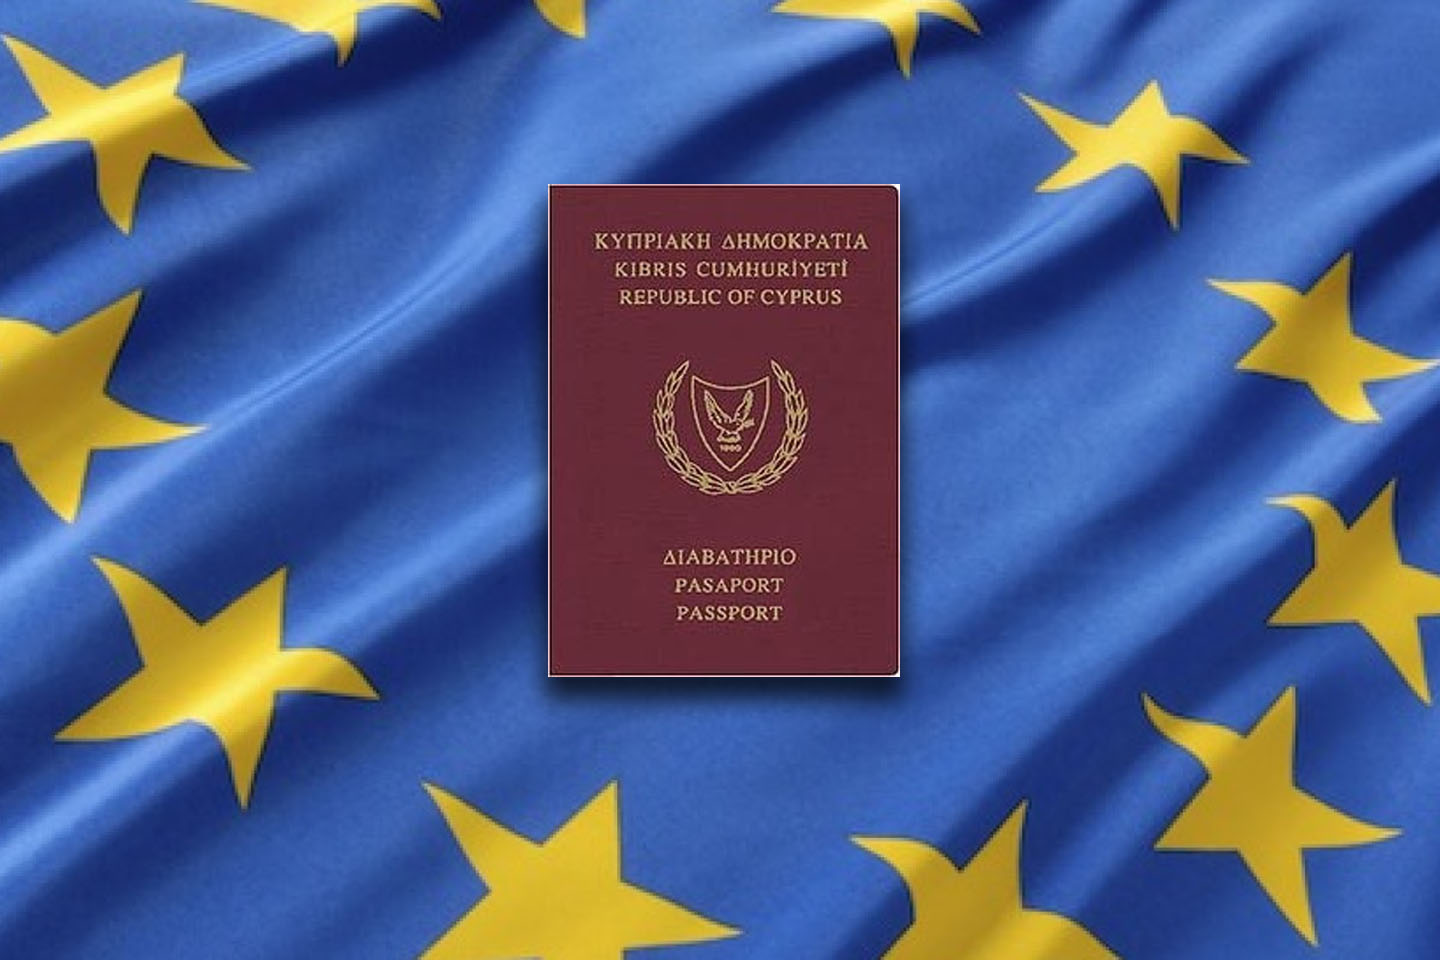 Do you need European (Cypriot) passport? Now we can arrange it within 3-6 months